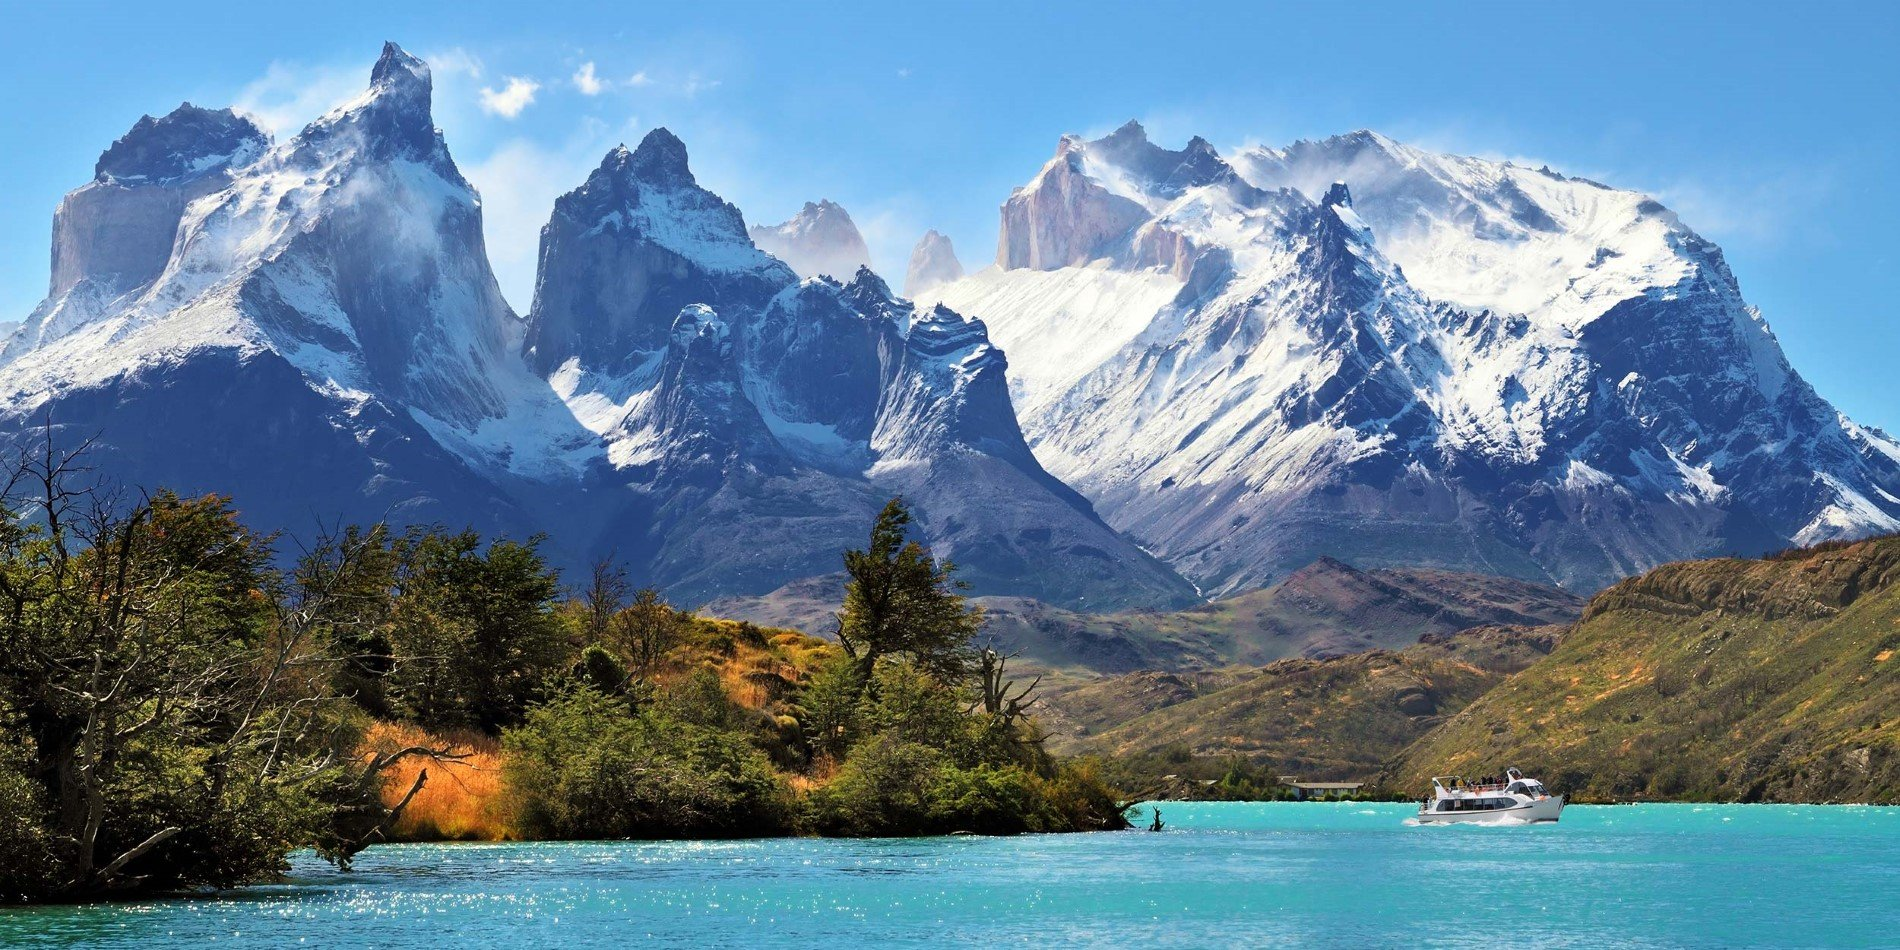 A view of a snow covered mountain with Torres del Paine National Park in the background